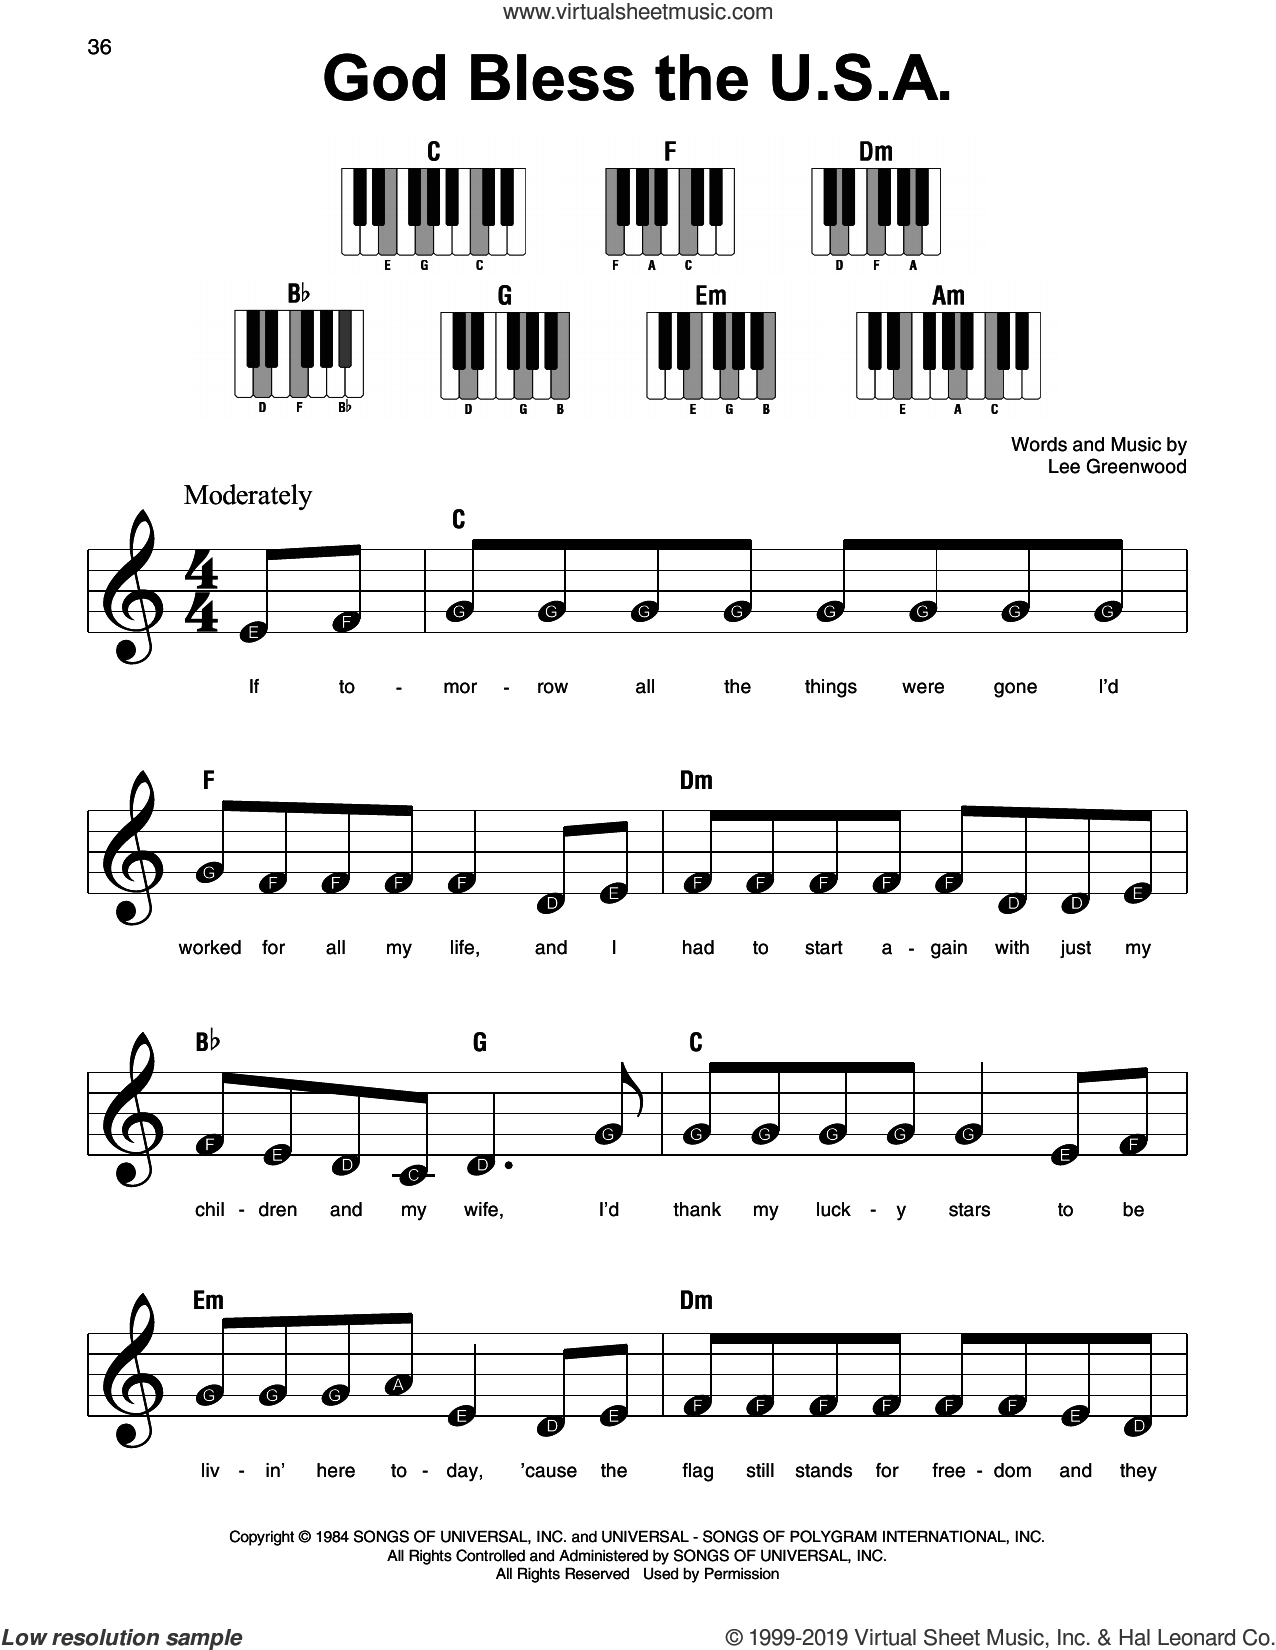 God Bless The U.S.A. sheet music for piano solo by Lee Greenwood, beginner skill level